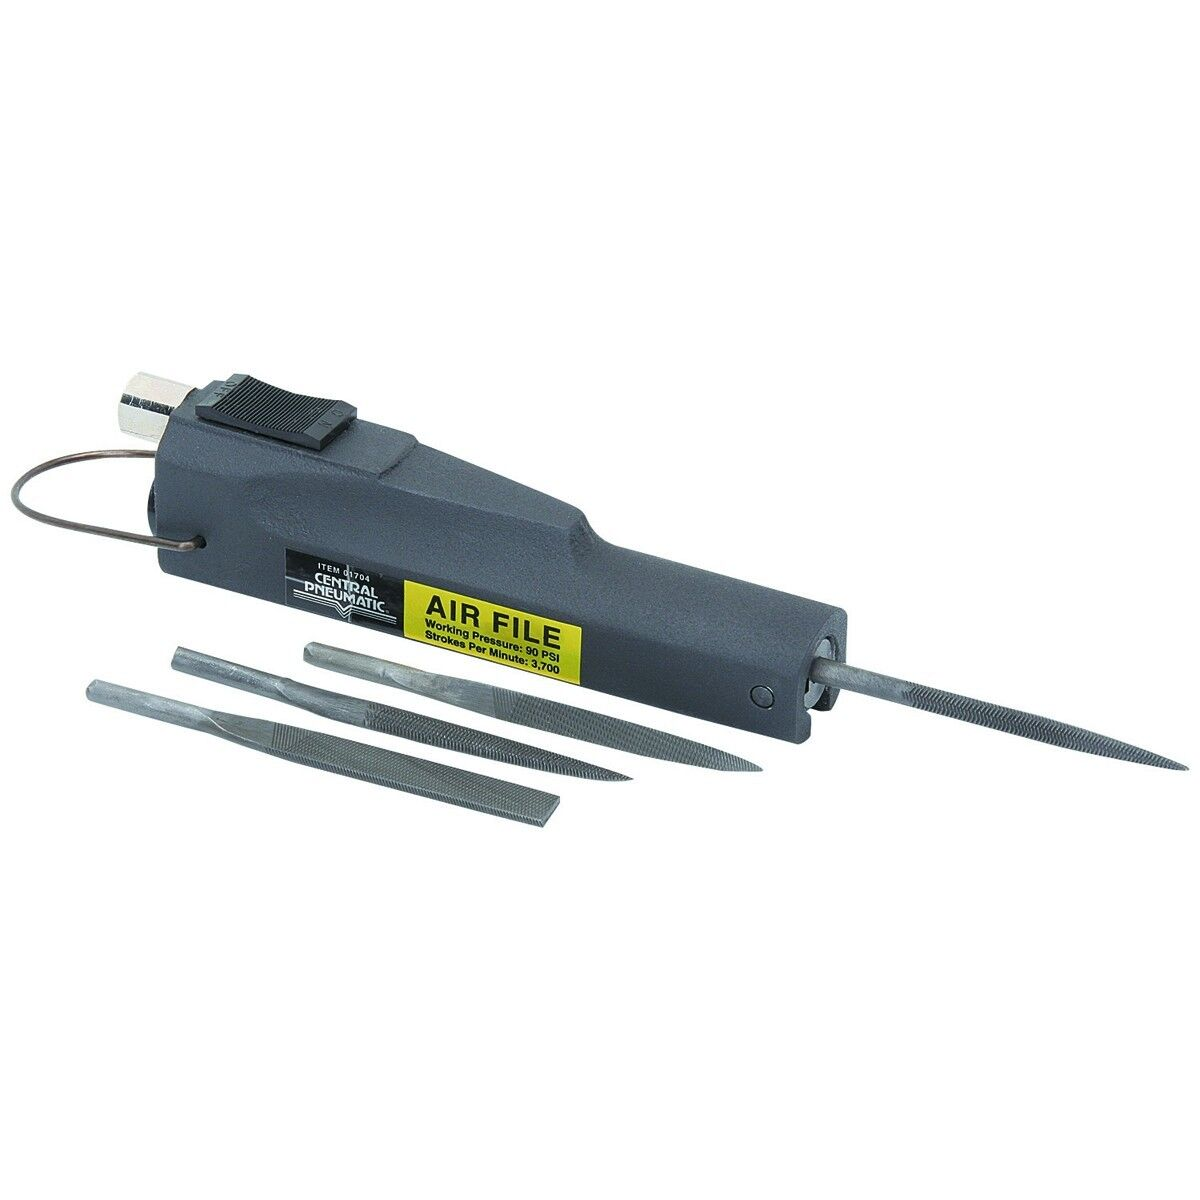 Brand New Air Pneumatic Air File Includes 4 files Filing And Grinding Tool